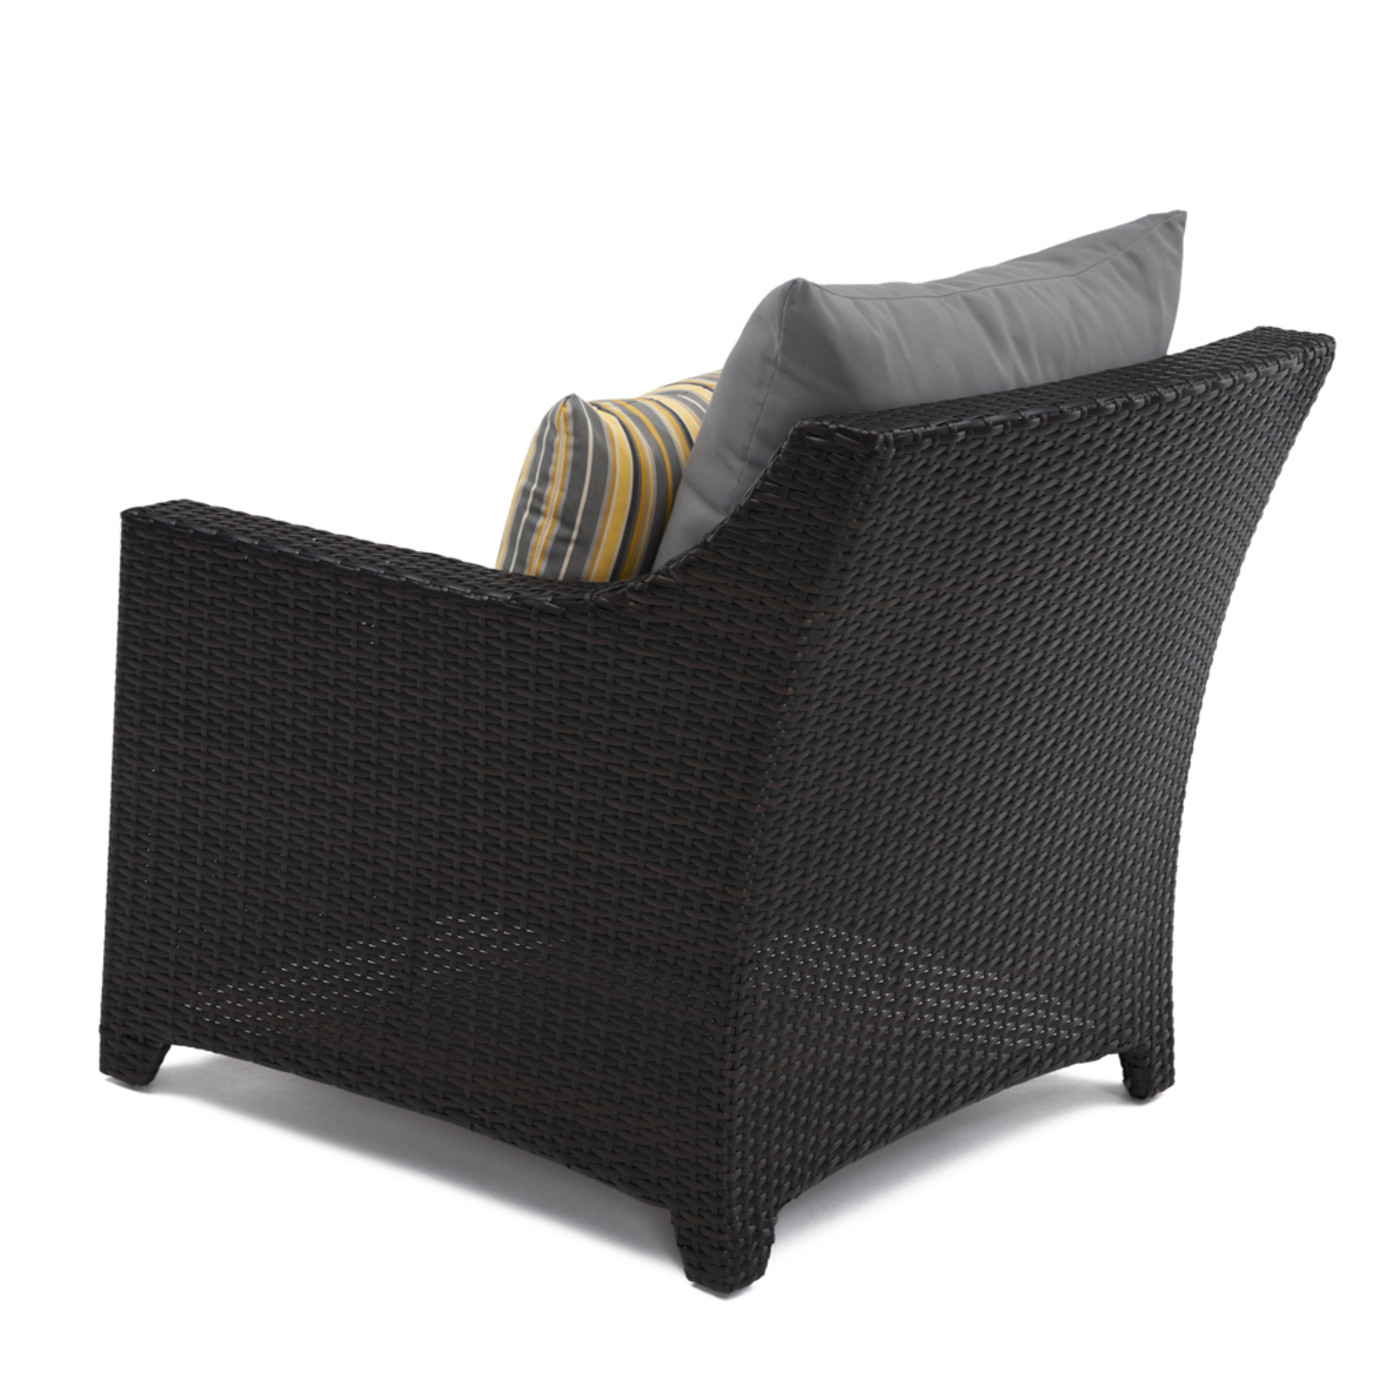 Deco™ 5pc Club & Table Chat Set - Charcoal Gray